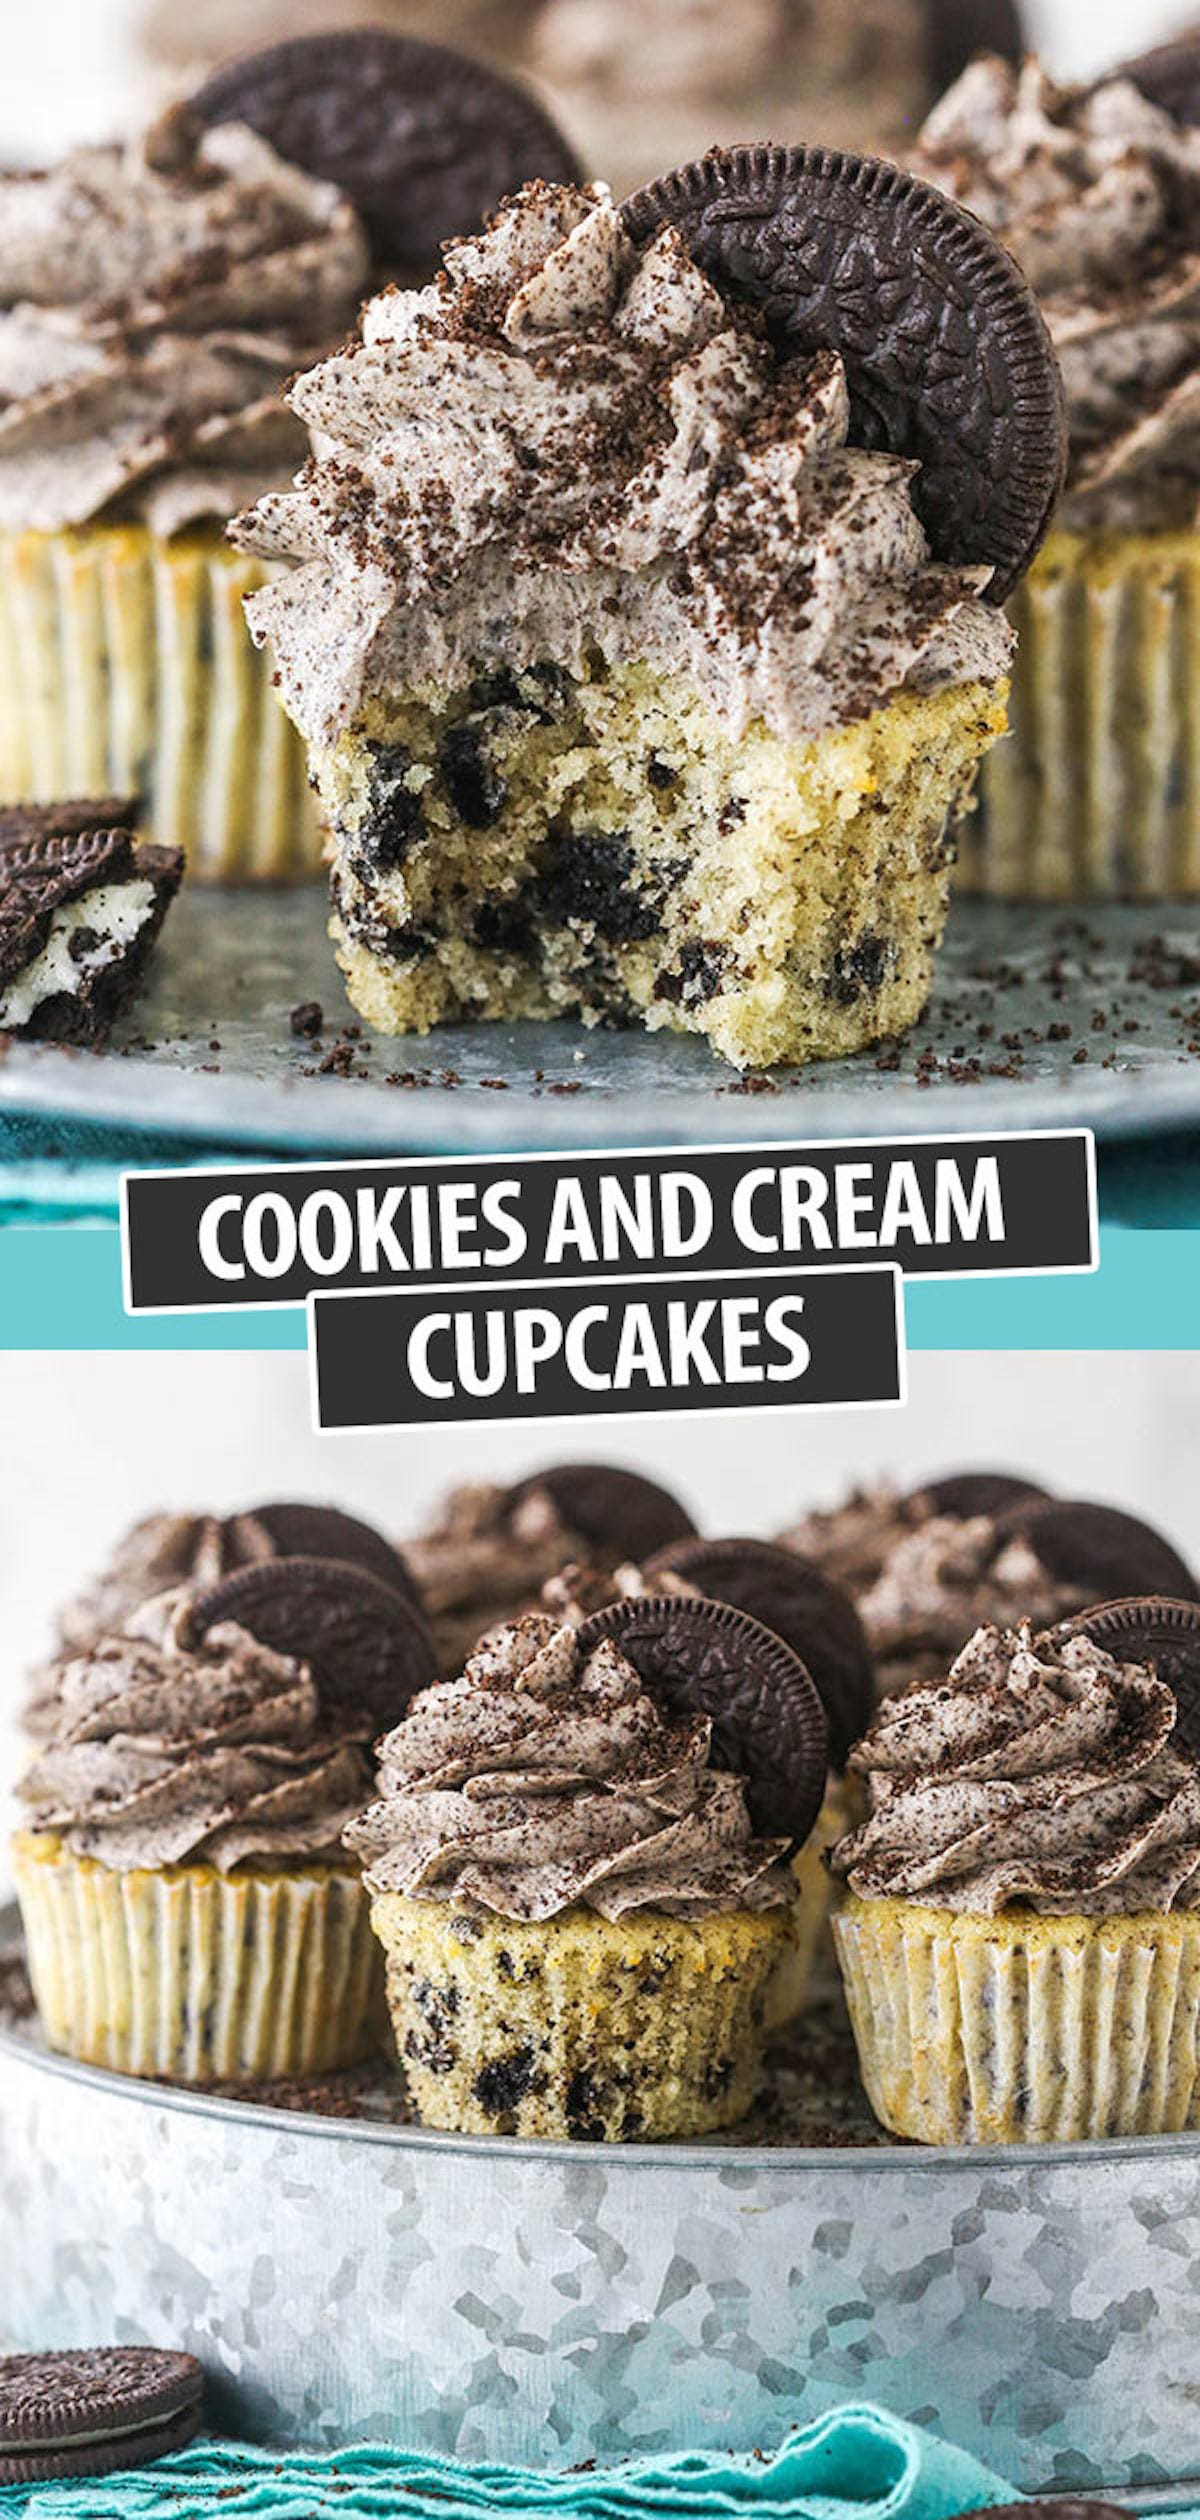 A Collage of Two Images of Freshly Made Oreo Cookies and Cream Cupcakes